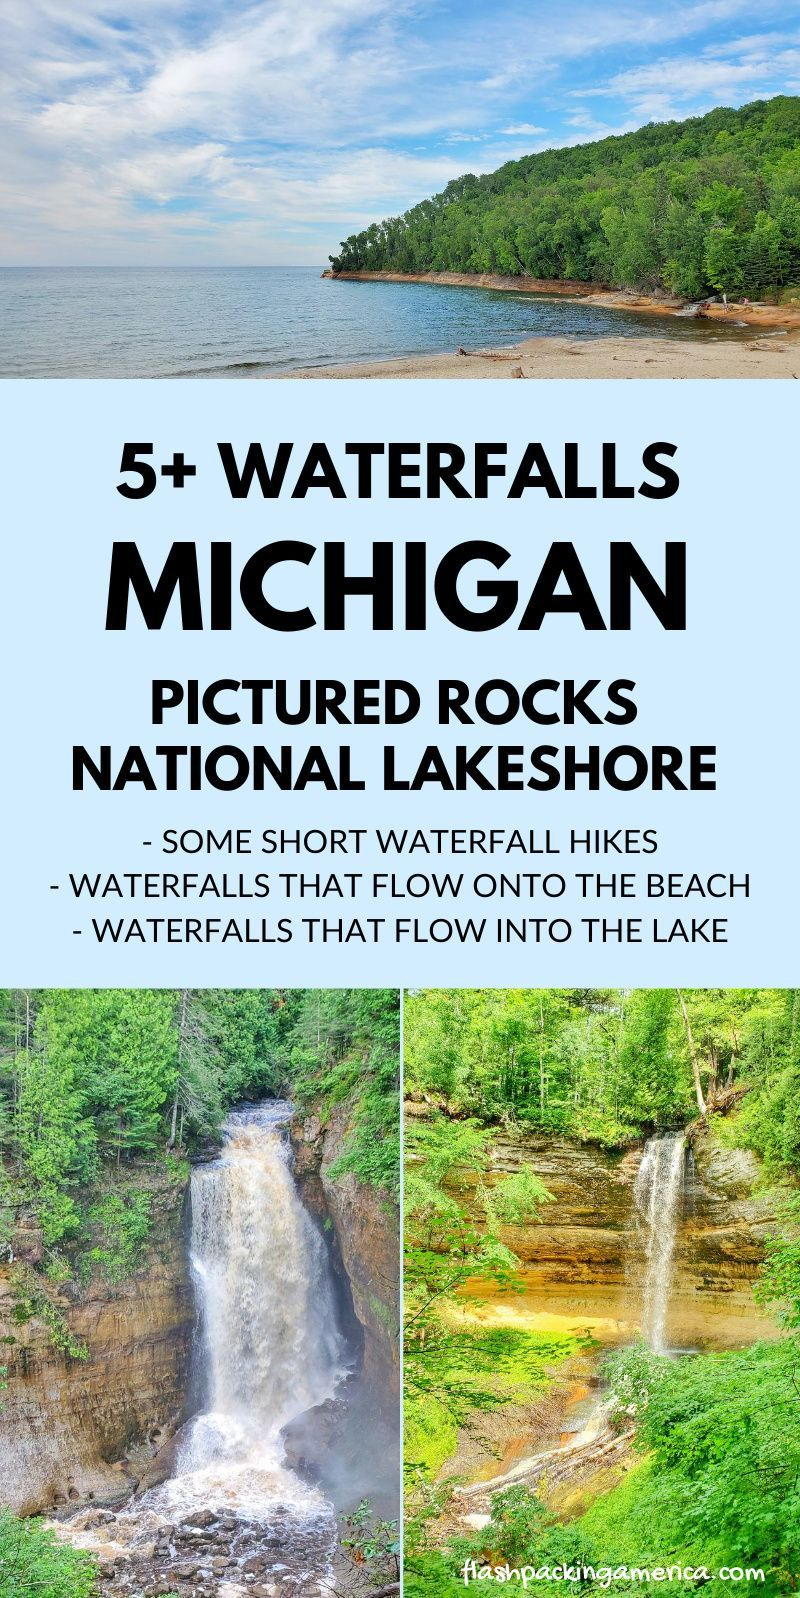 Michigan waterfalls: US vacation ideas with nation